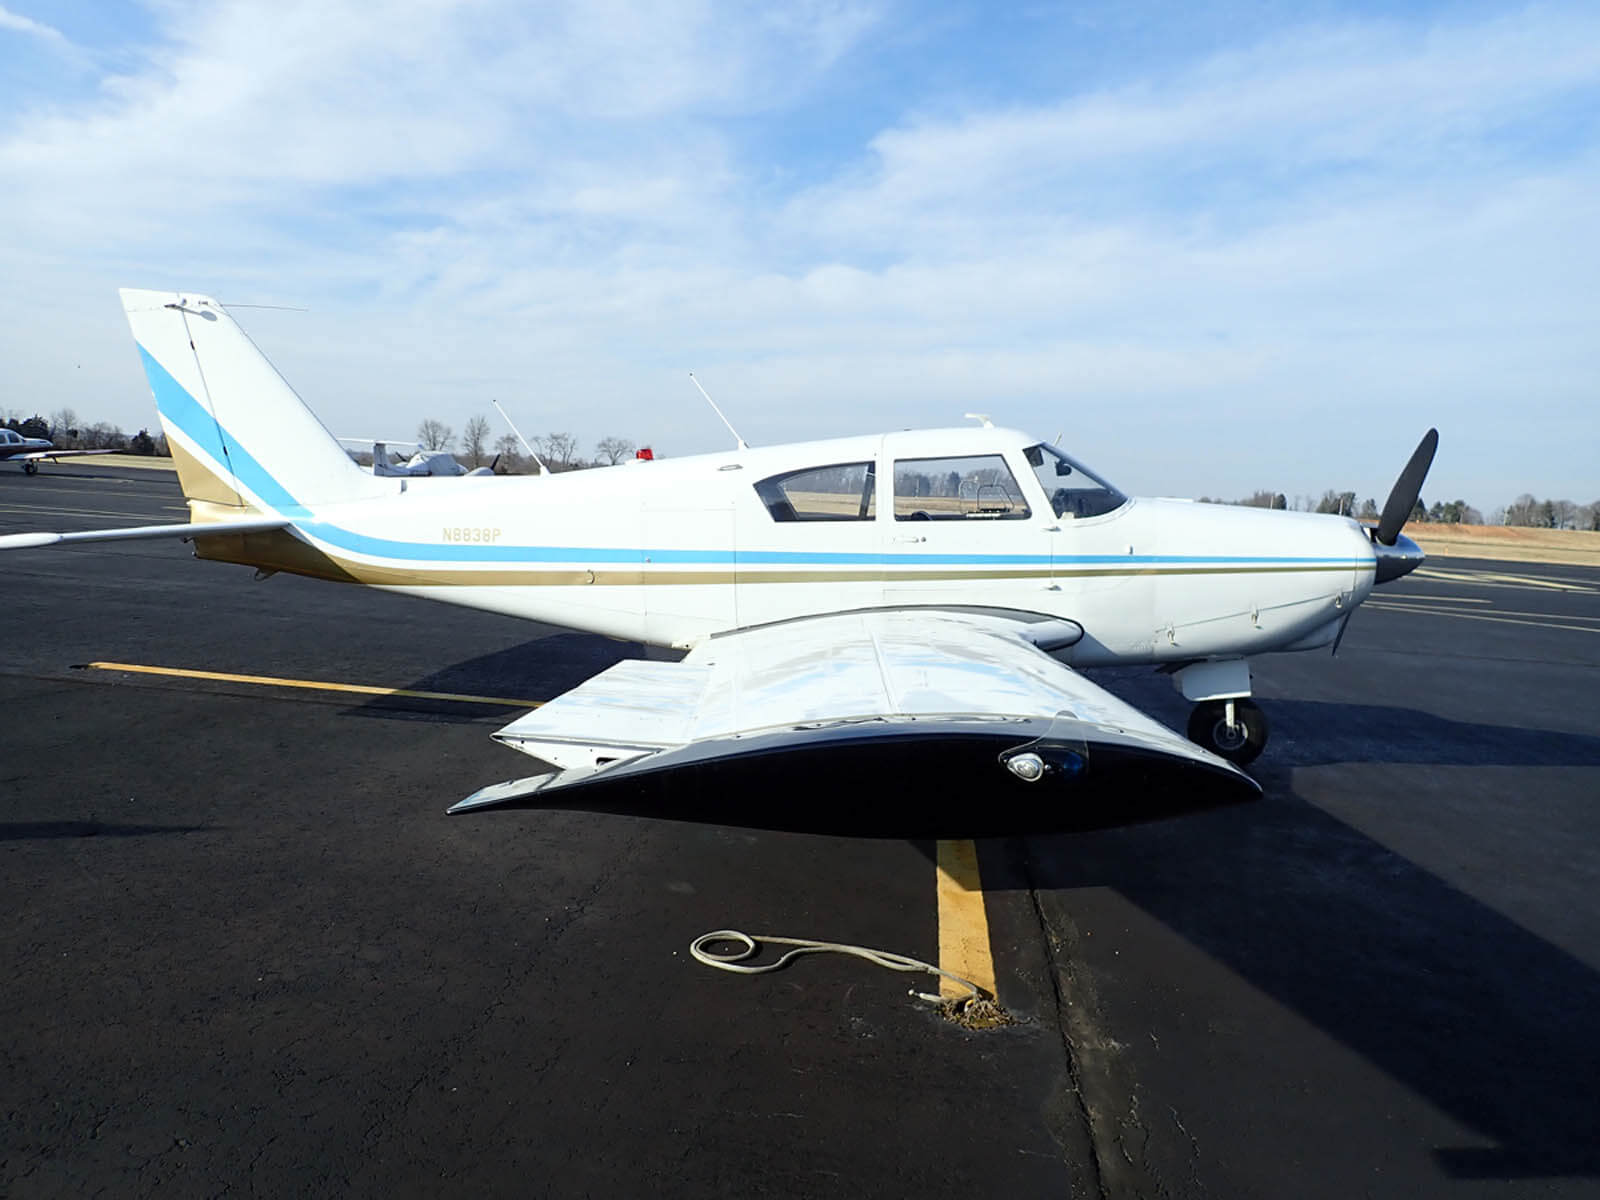 1965 Comanche - FOR SALE at Princeton Airport - Contact Ken Nierenberg at 609-731-4628 for details